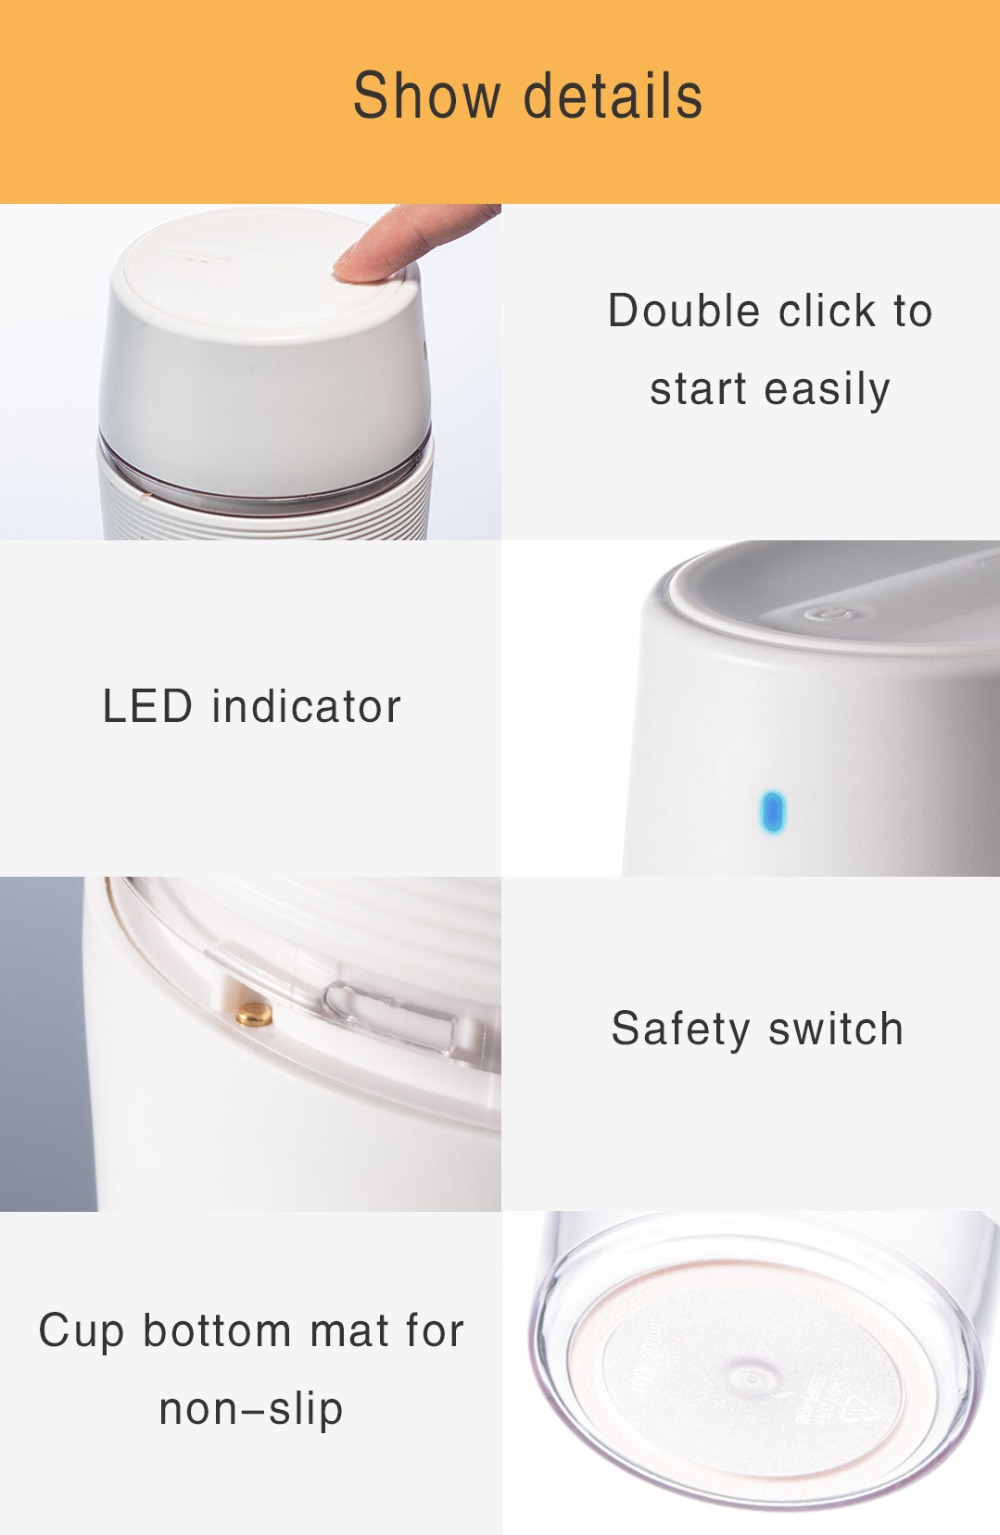 H9d63221a291e40729e6f83cd37fa3142Z XIAOMI MIJIA Bud BR25E Blender Portable Fruit Cup Electric Kitchen Mixer Juicer food processor Machine 300ML Magnetic charging